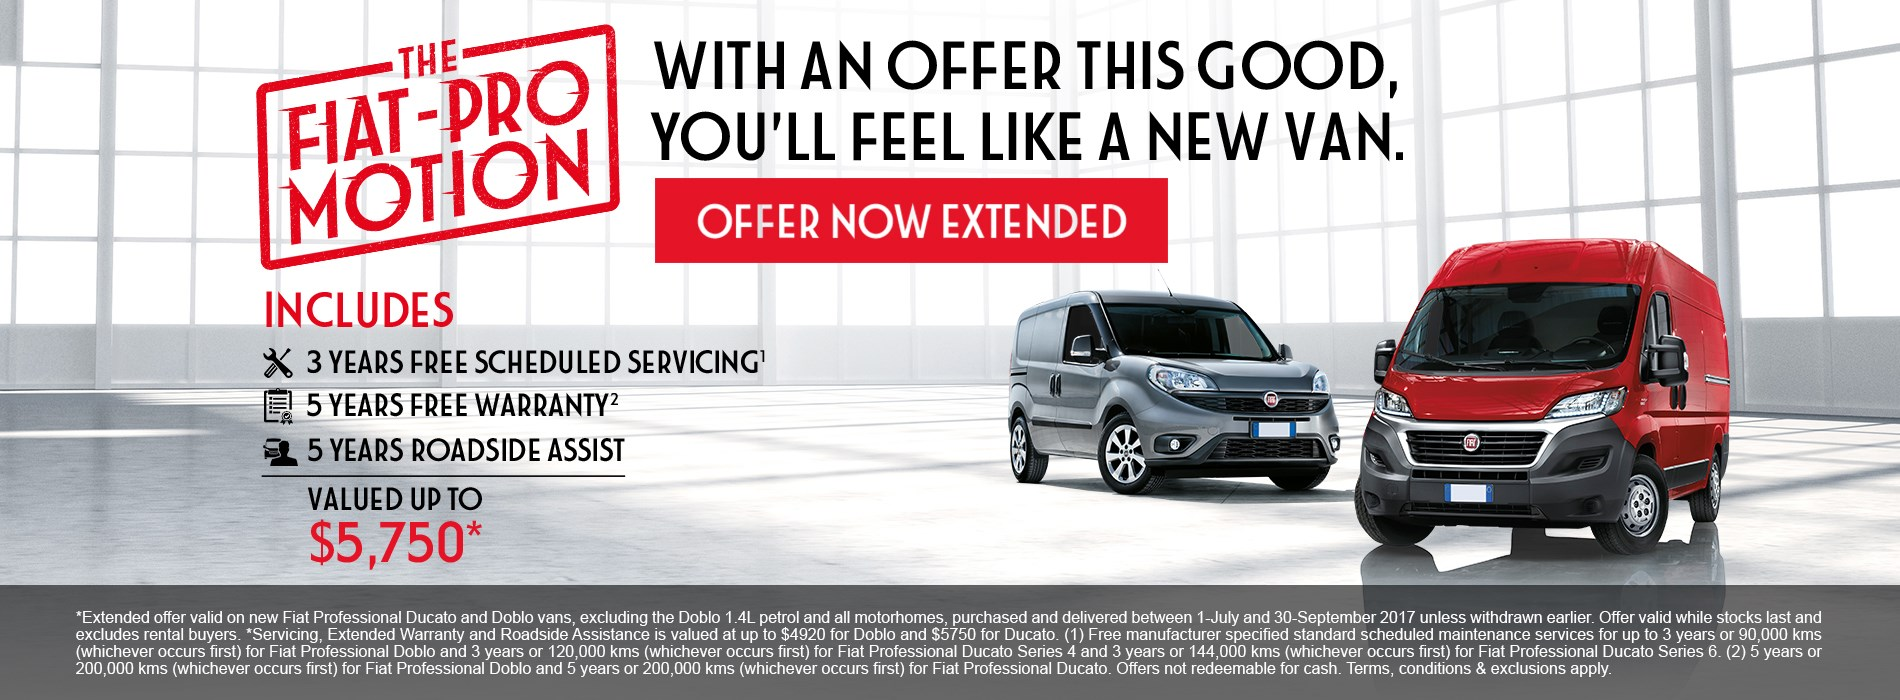 Fiat Professional Range Extended Warranty Offer